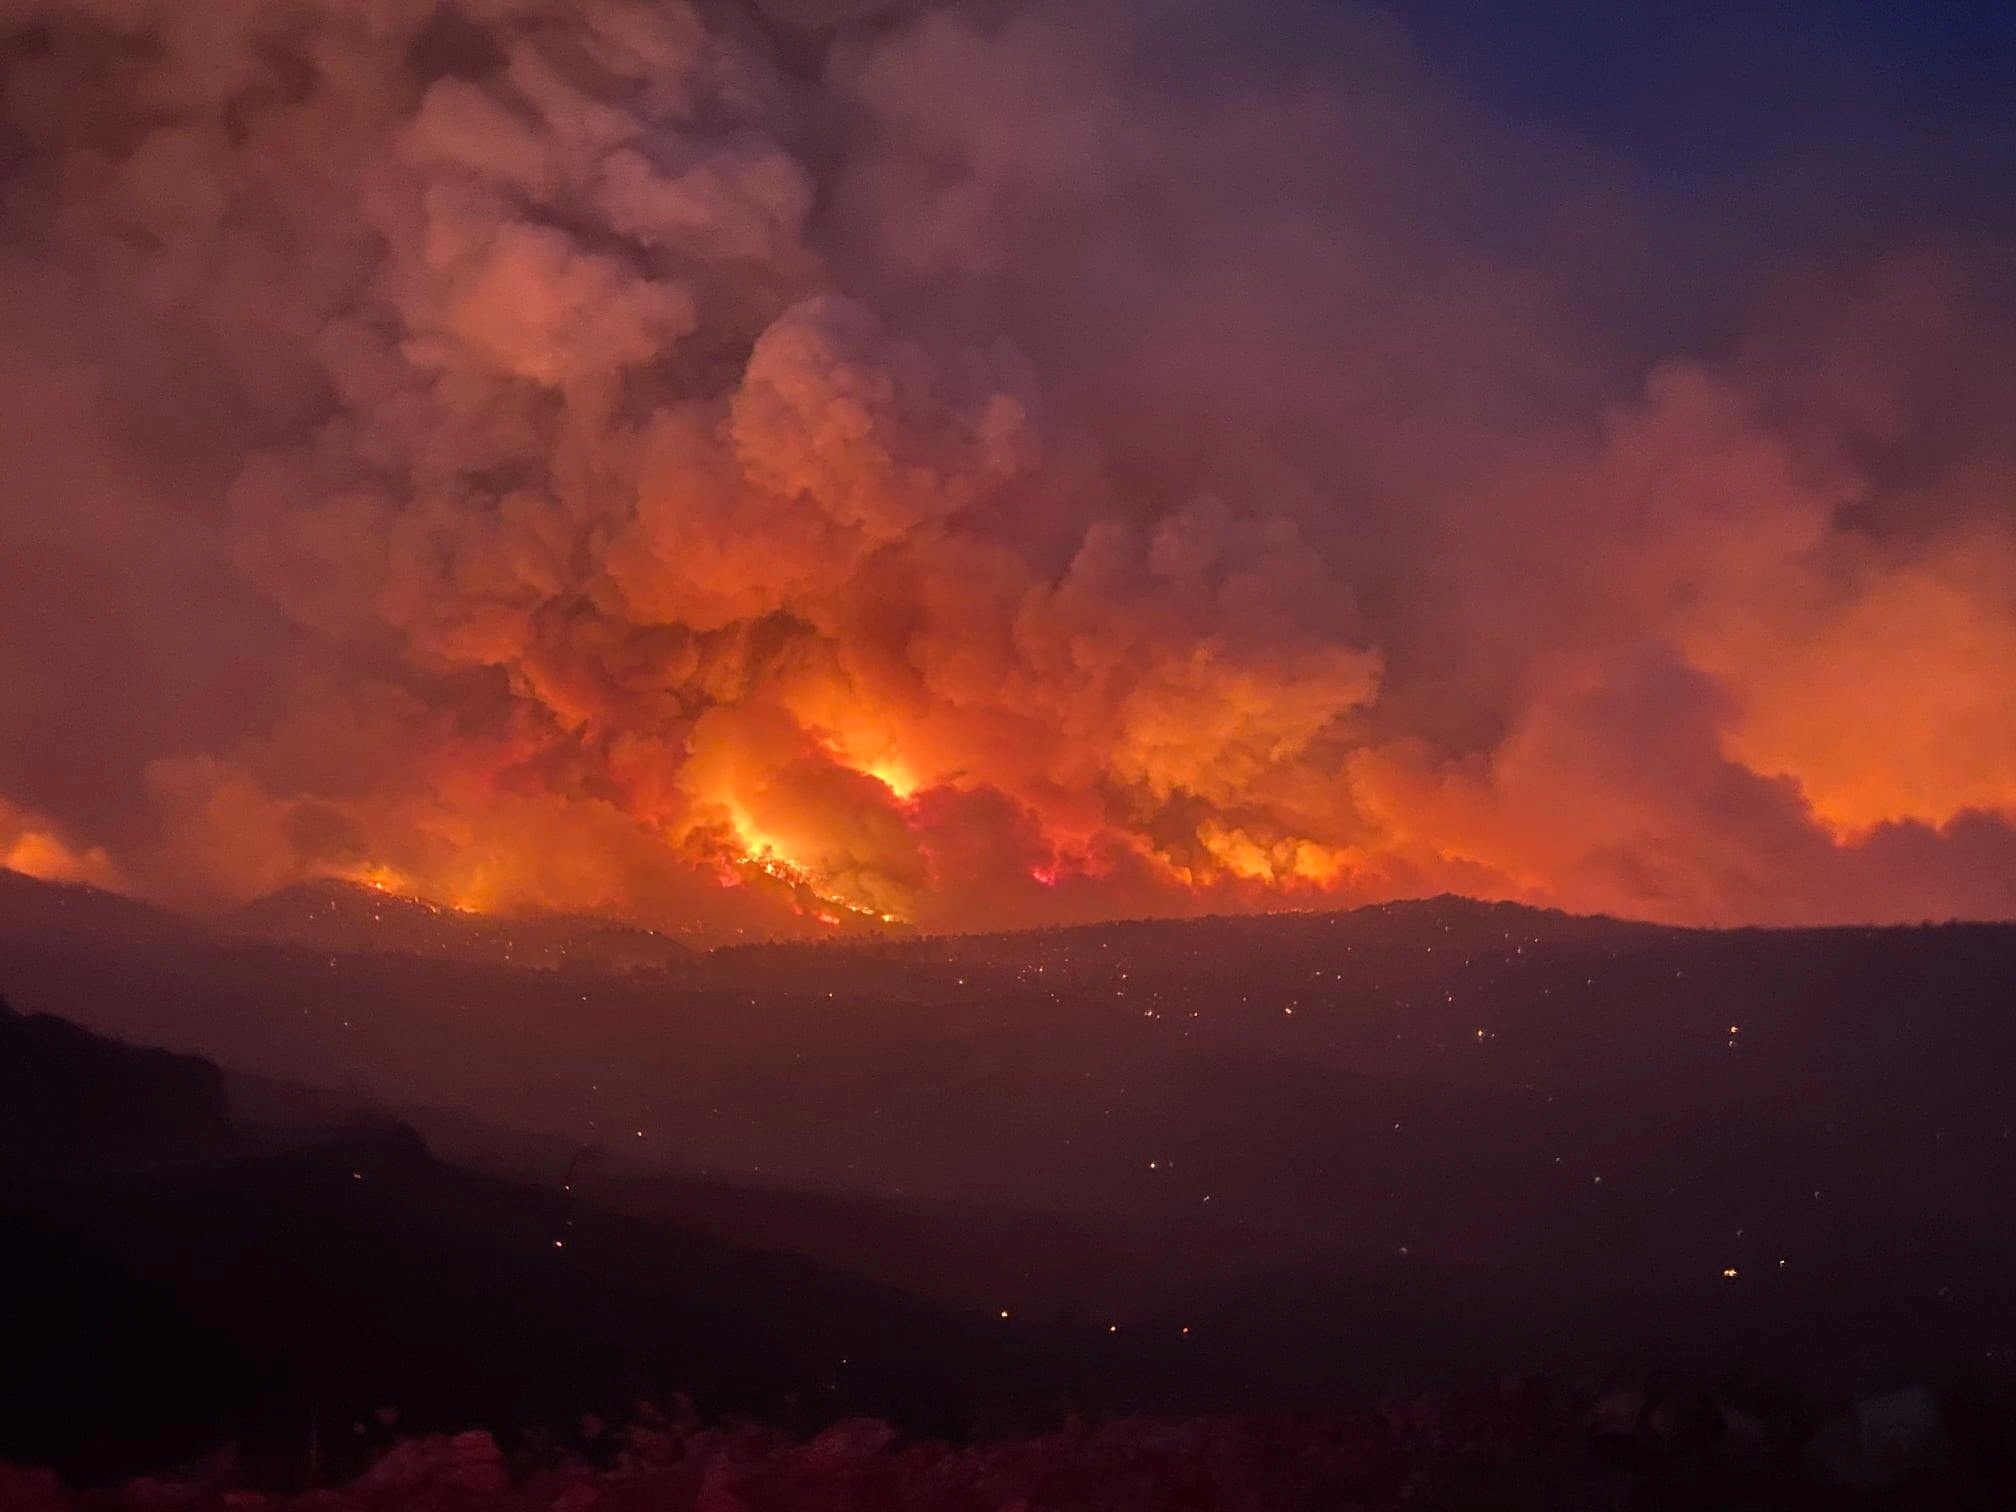 Smoke plumes rise from a blaze as a wildfire rages on in Arizona, U.S., June 7, 2021, in this image obtained from social media. Arizona Department of Forestry and Fire Management/ via REUTERS